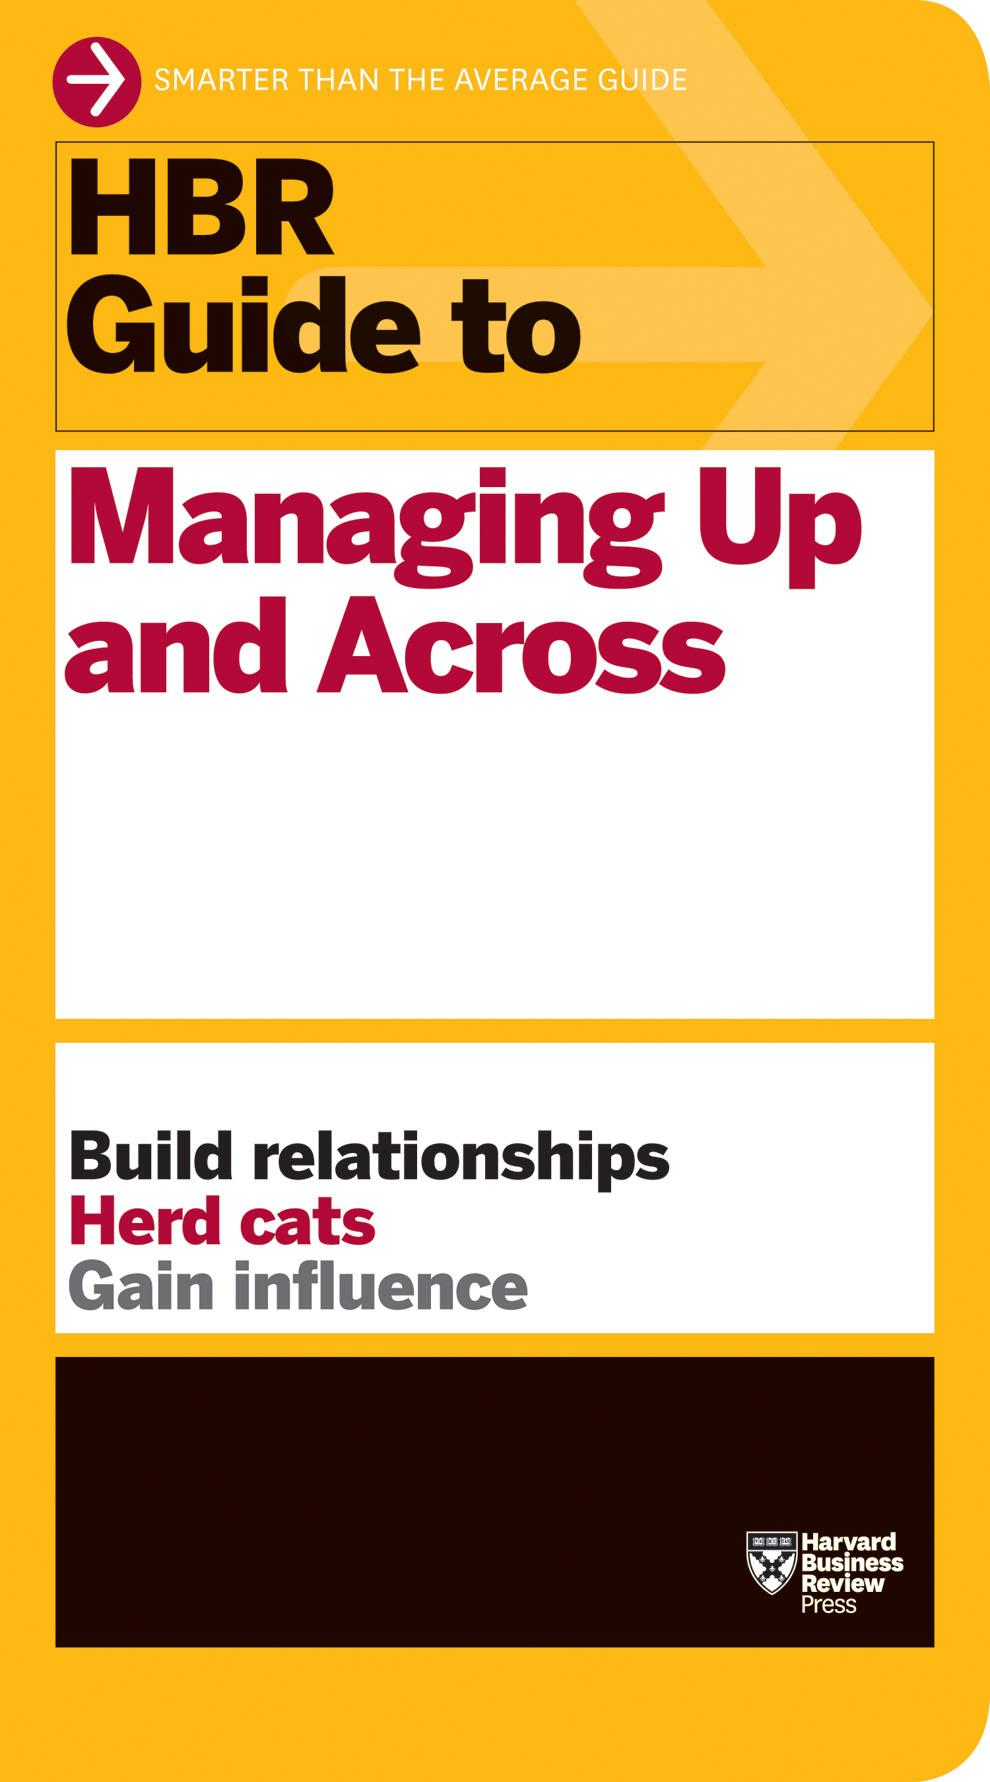 Hbr guide 2013 ebook pdf read online array booko comparing prices for hbr guide to managing up and across rh booko com ebook fandeluxe Choice Image